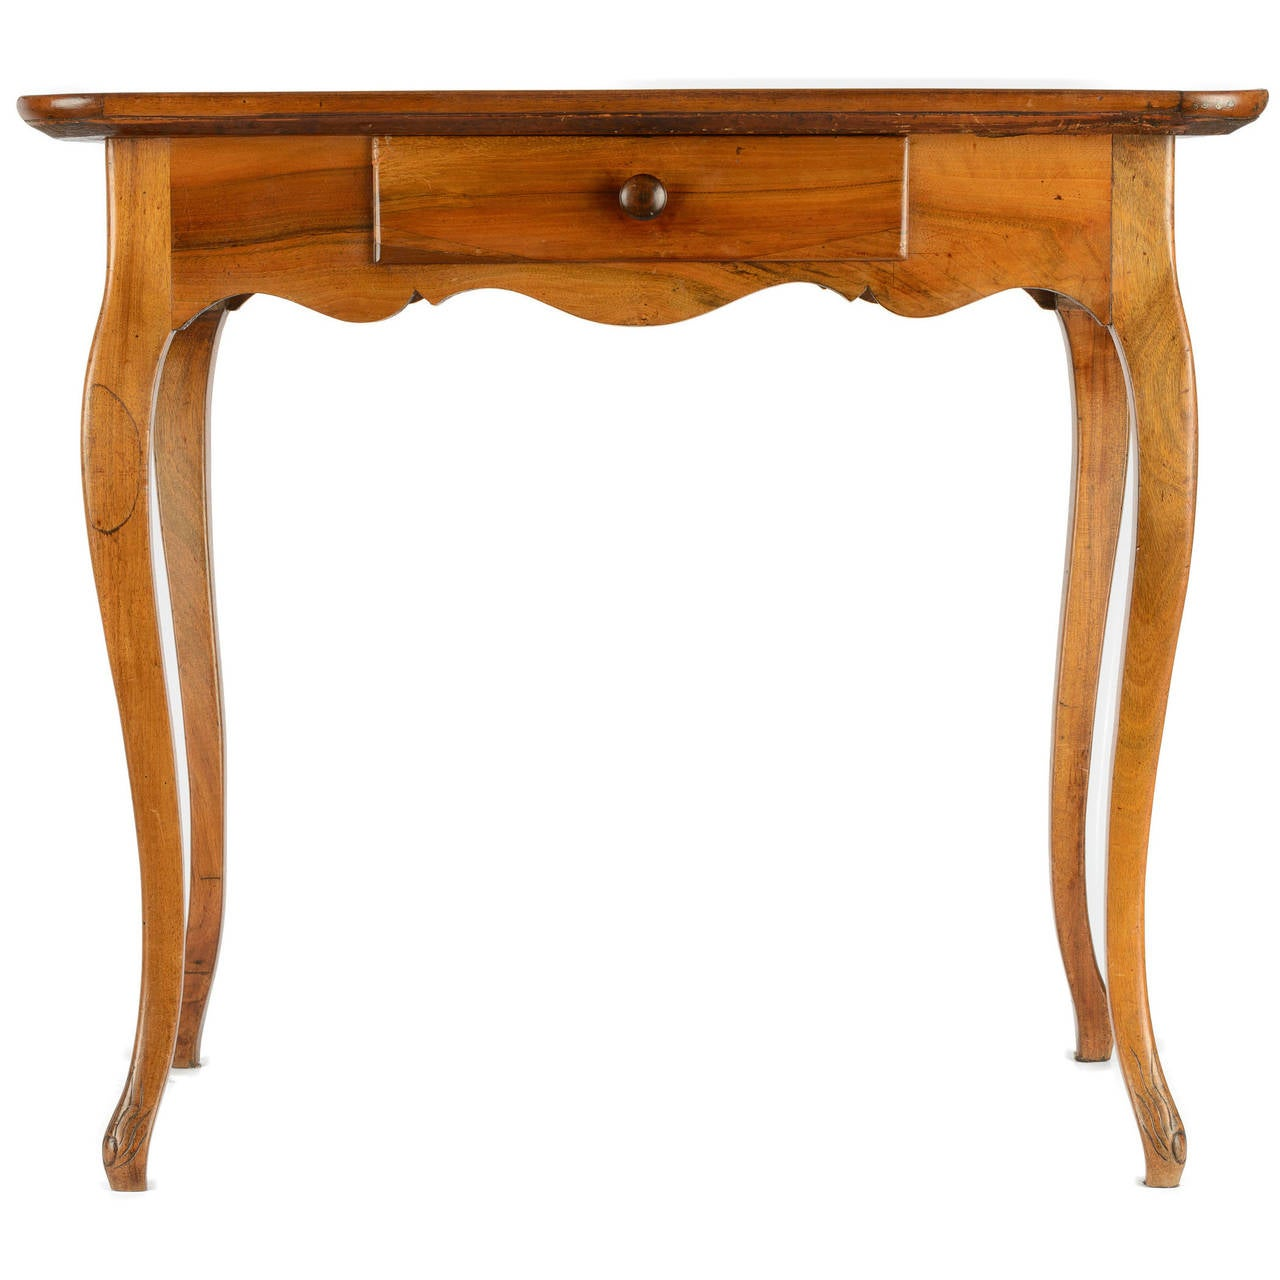 Louis xv style side table with marquetry top for sale at